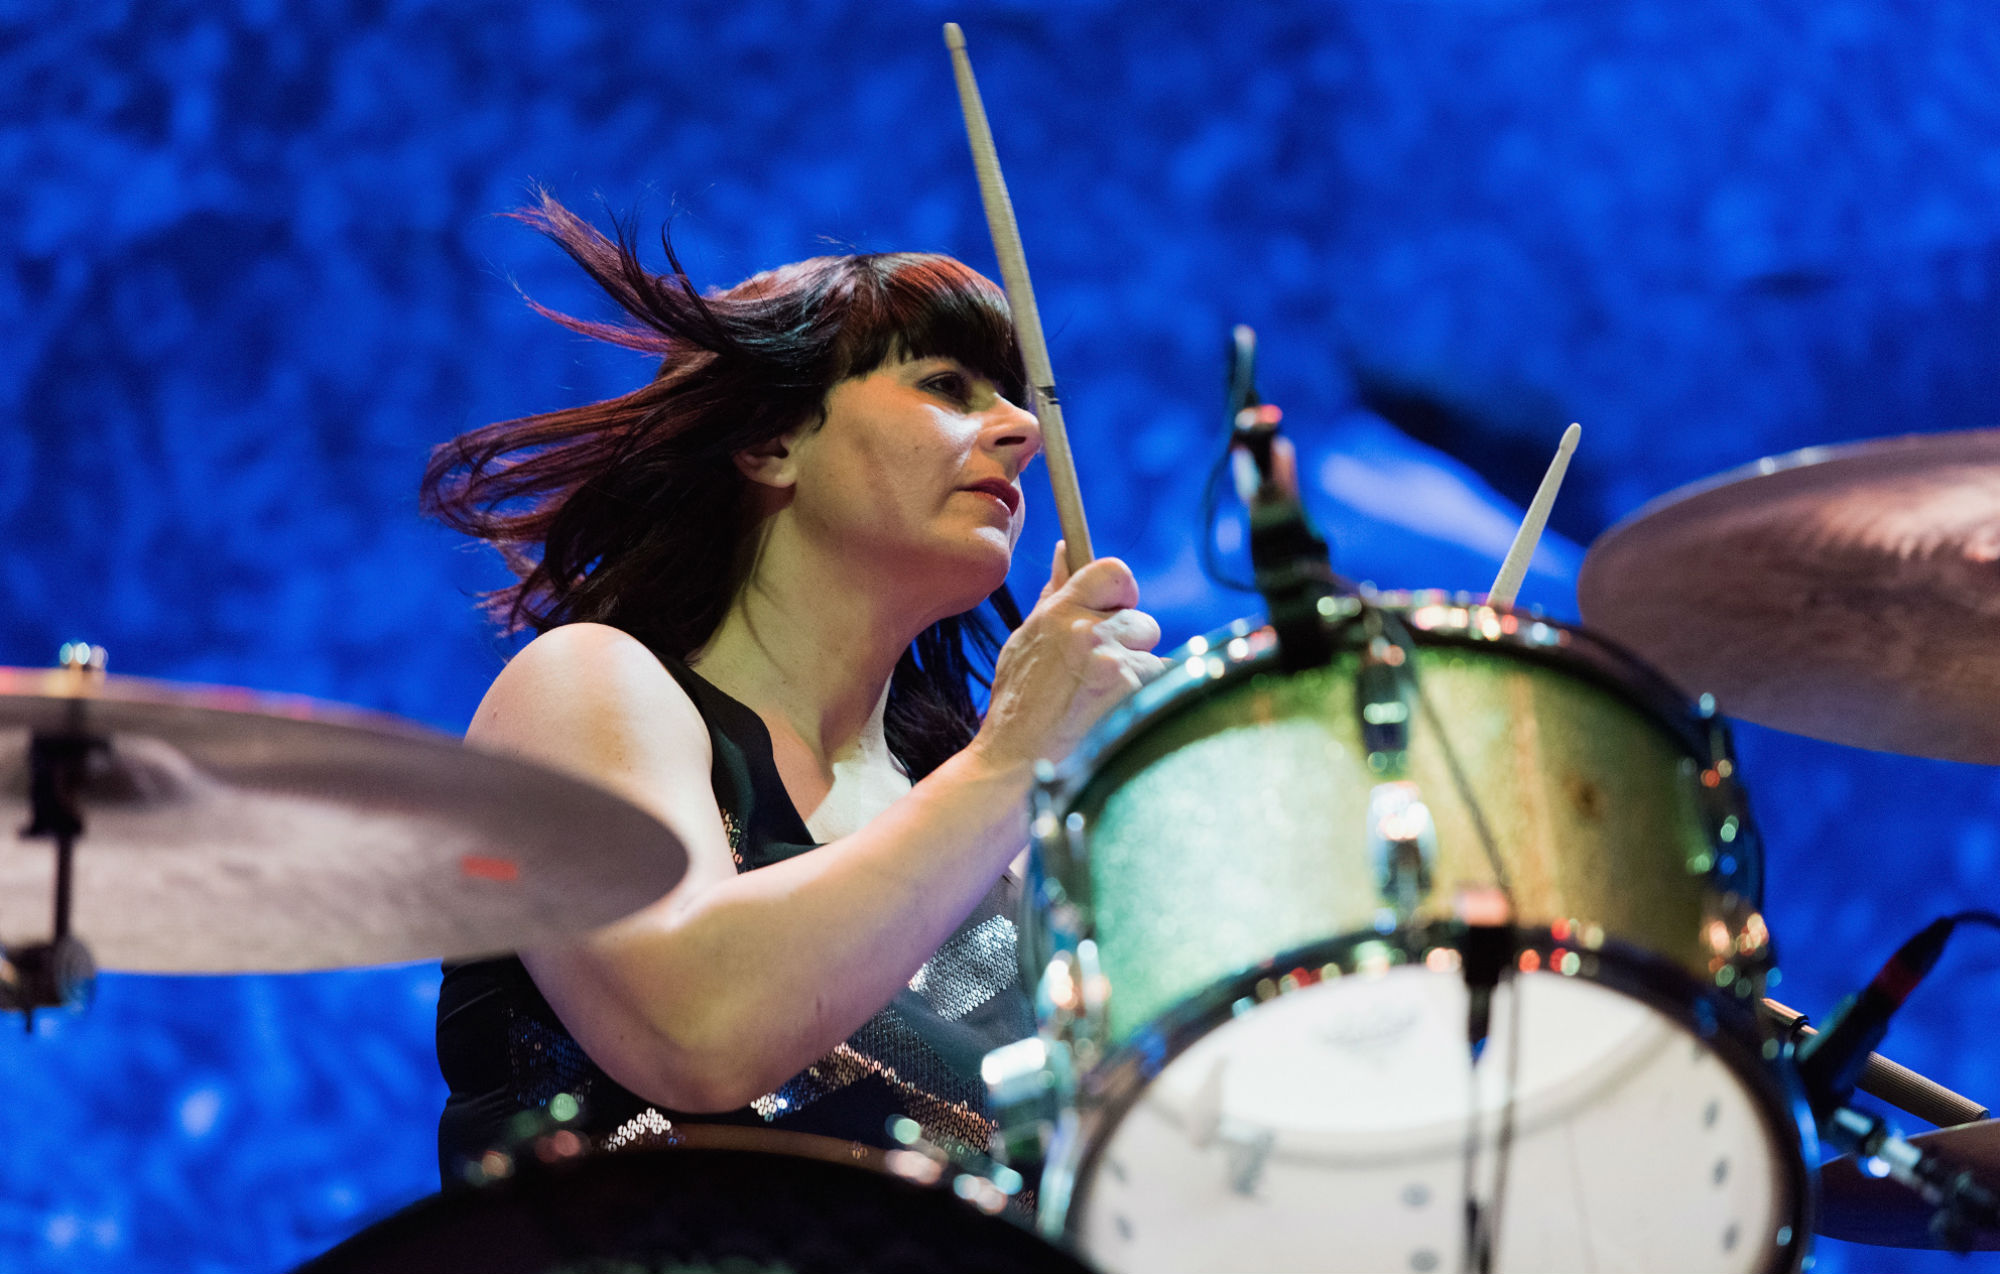 """Former Sleater-Kinney drummer Janet Weiss opens up on difficult departure: """"The rules changed within the band"""""""